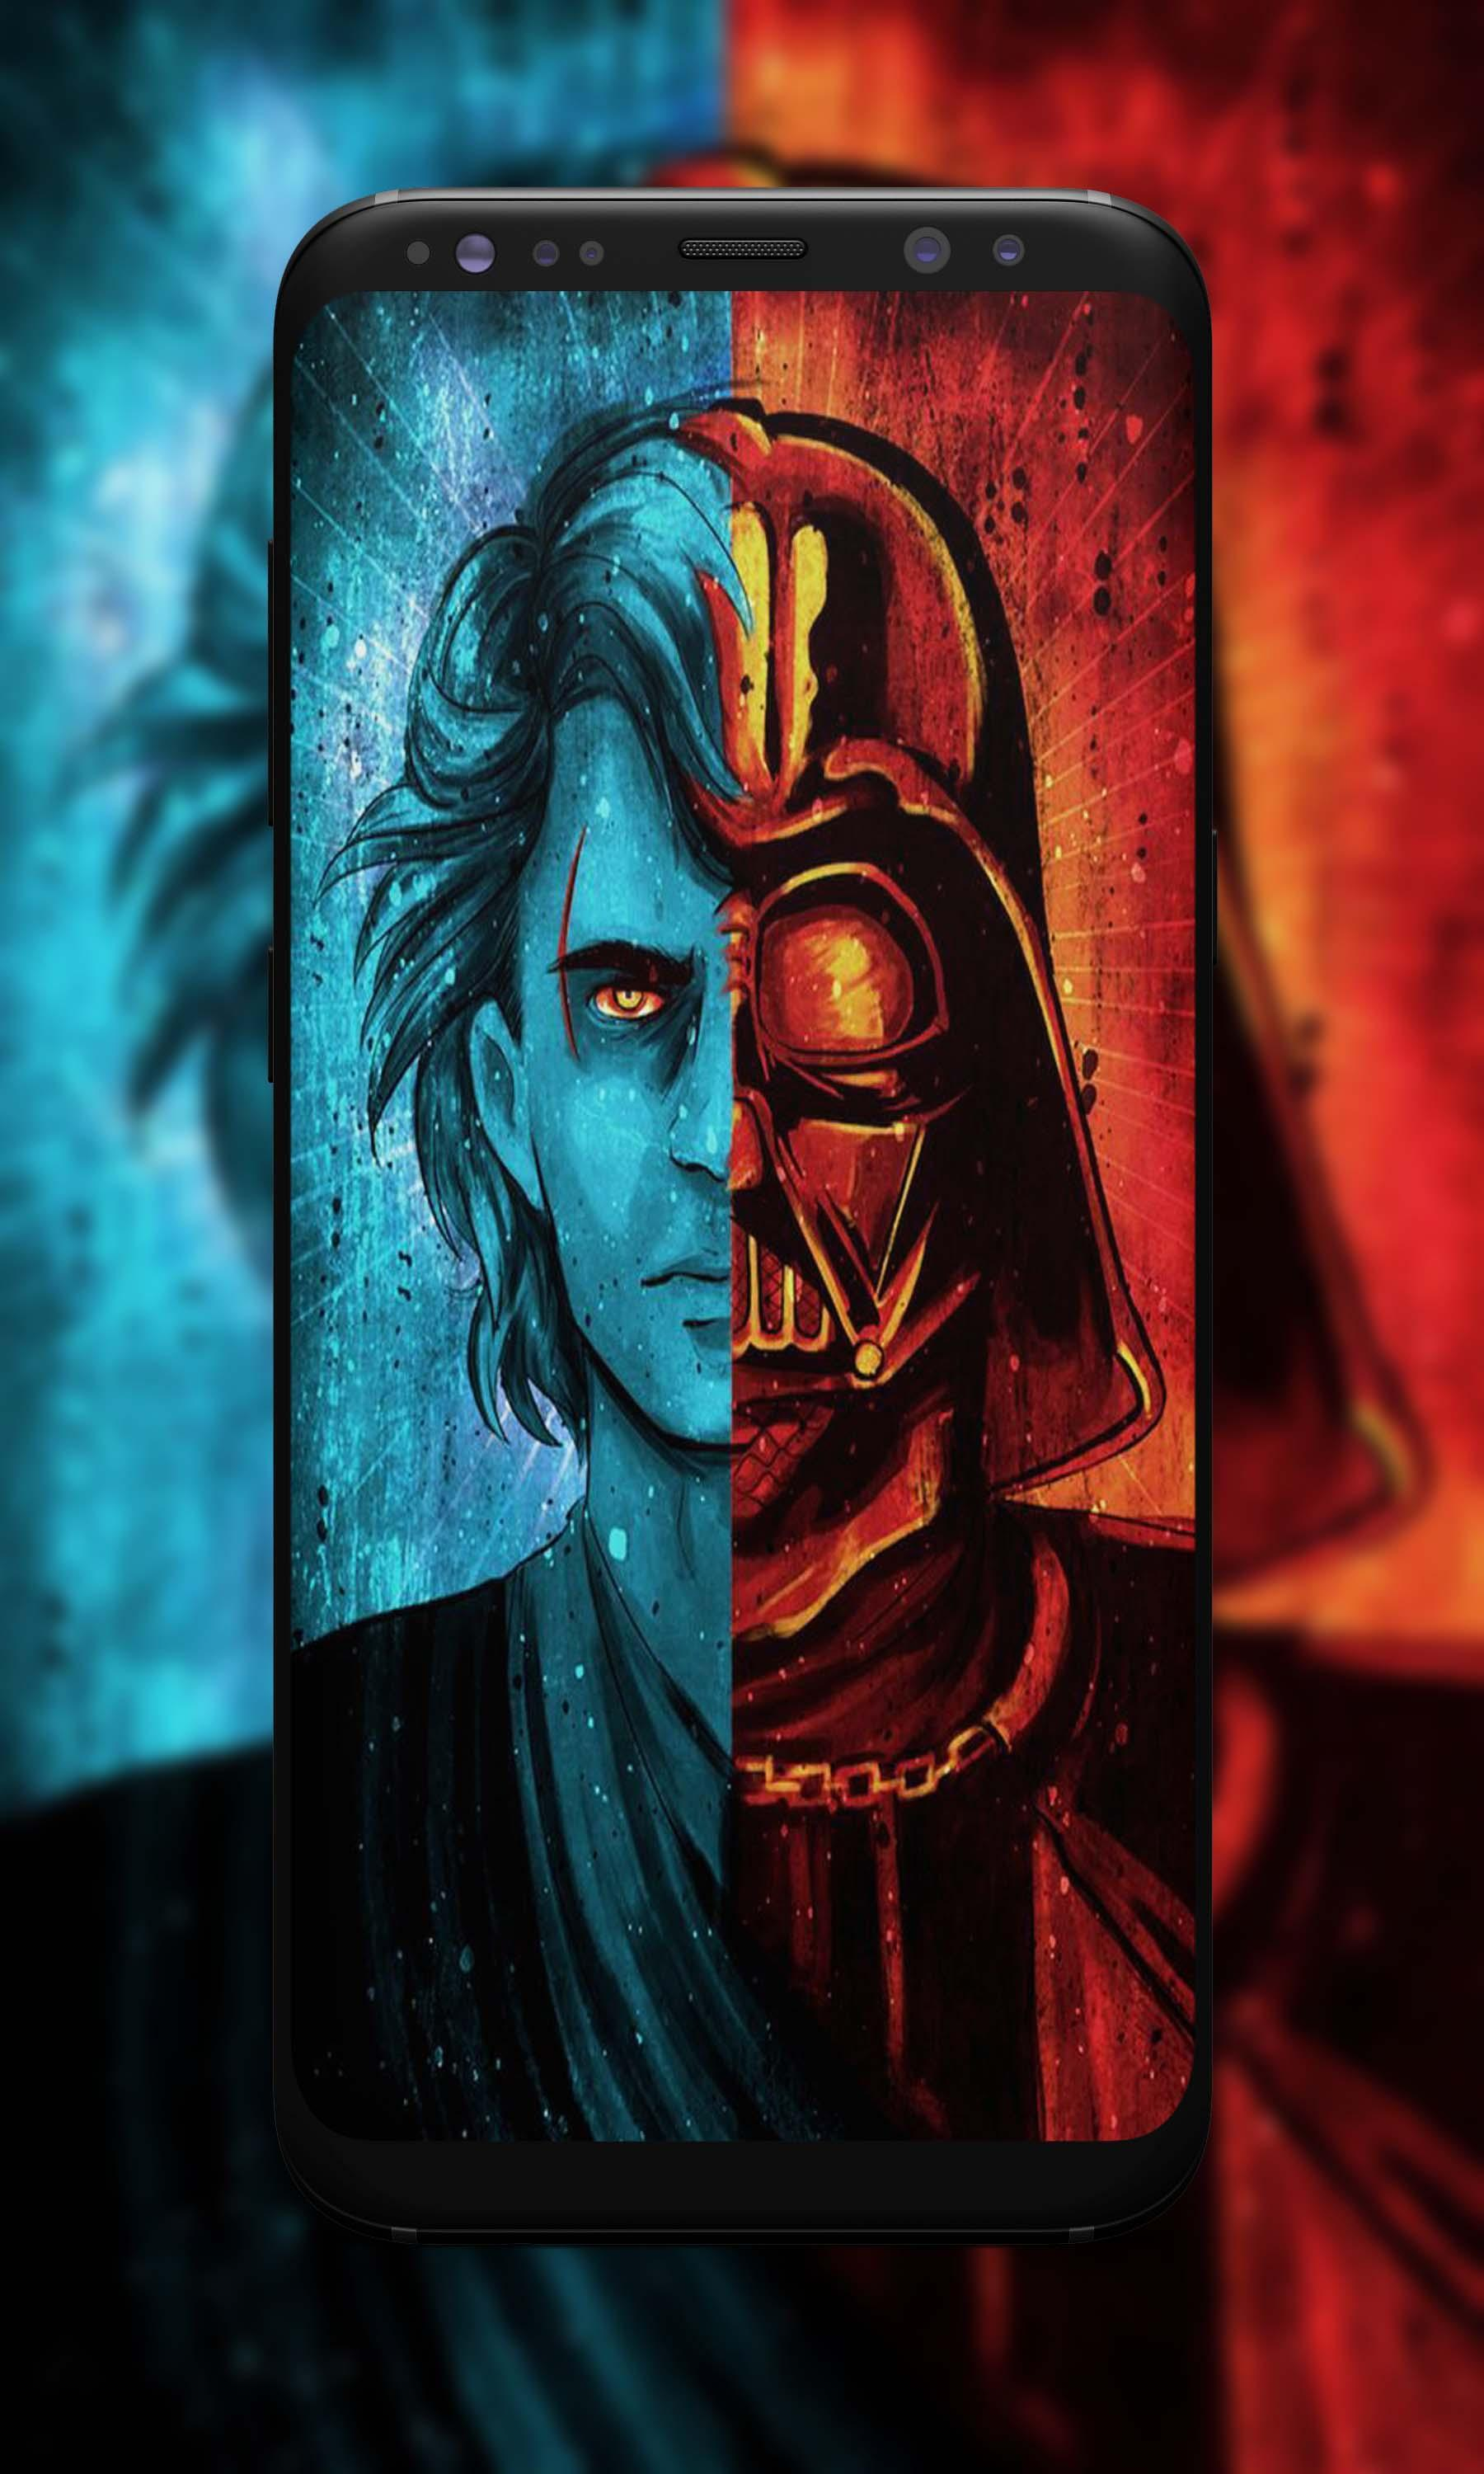 Starwars Wallpaper Hd For Android Apk Download